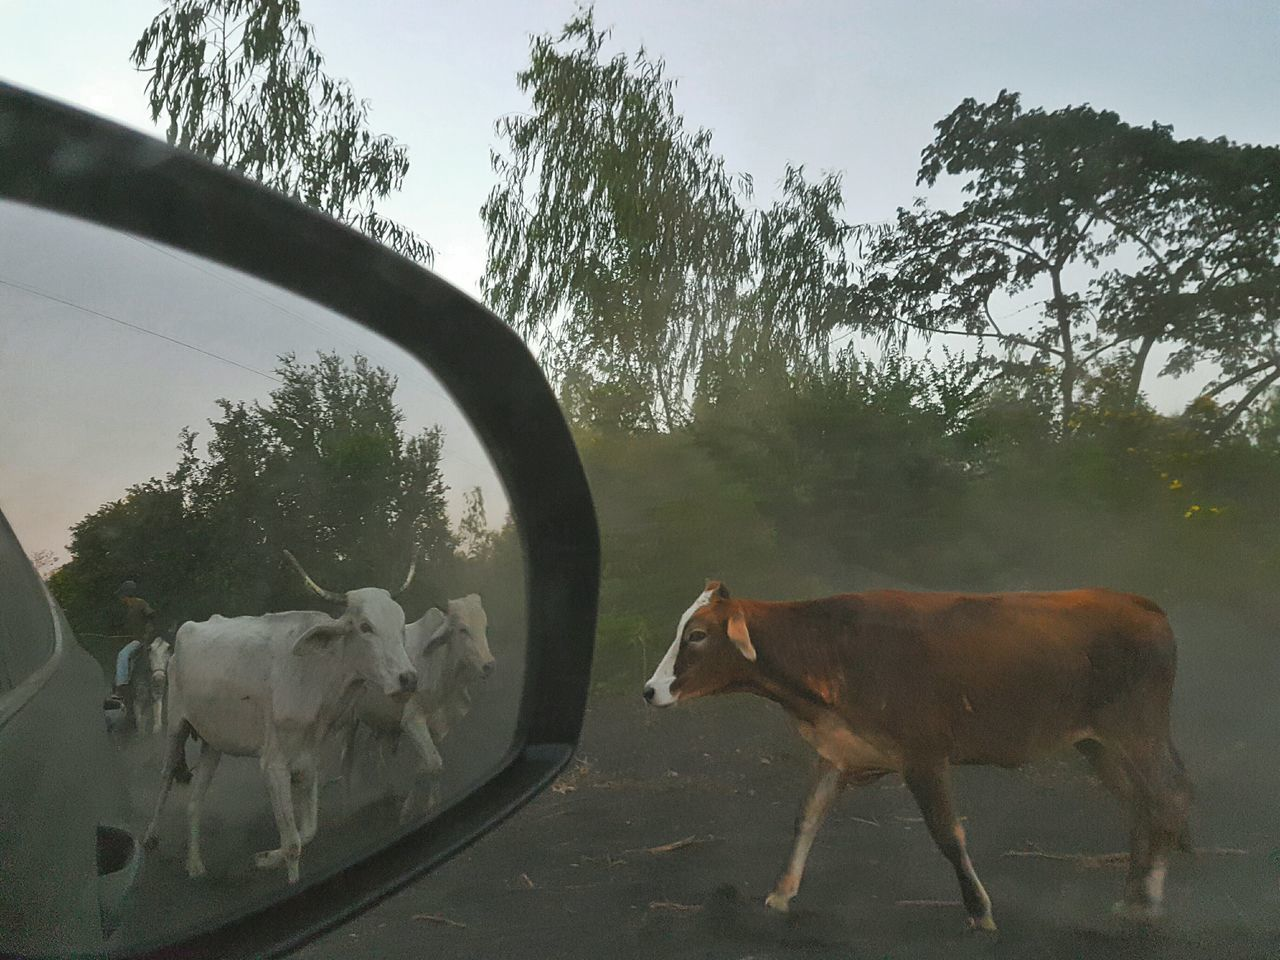 Reflection Nicaragua Vacations Animals In The Wild Green Trees Nature No People Traveling Volcano National Park Country Cow Cows Cows In A Field Rural Mirror Mirror Reflection Mirror Picture Mirror Effect Mirror Image